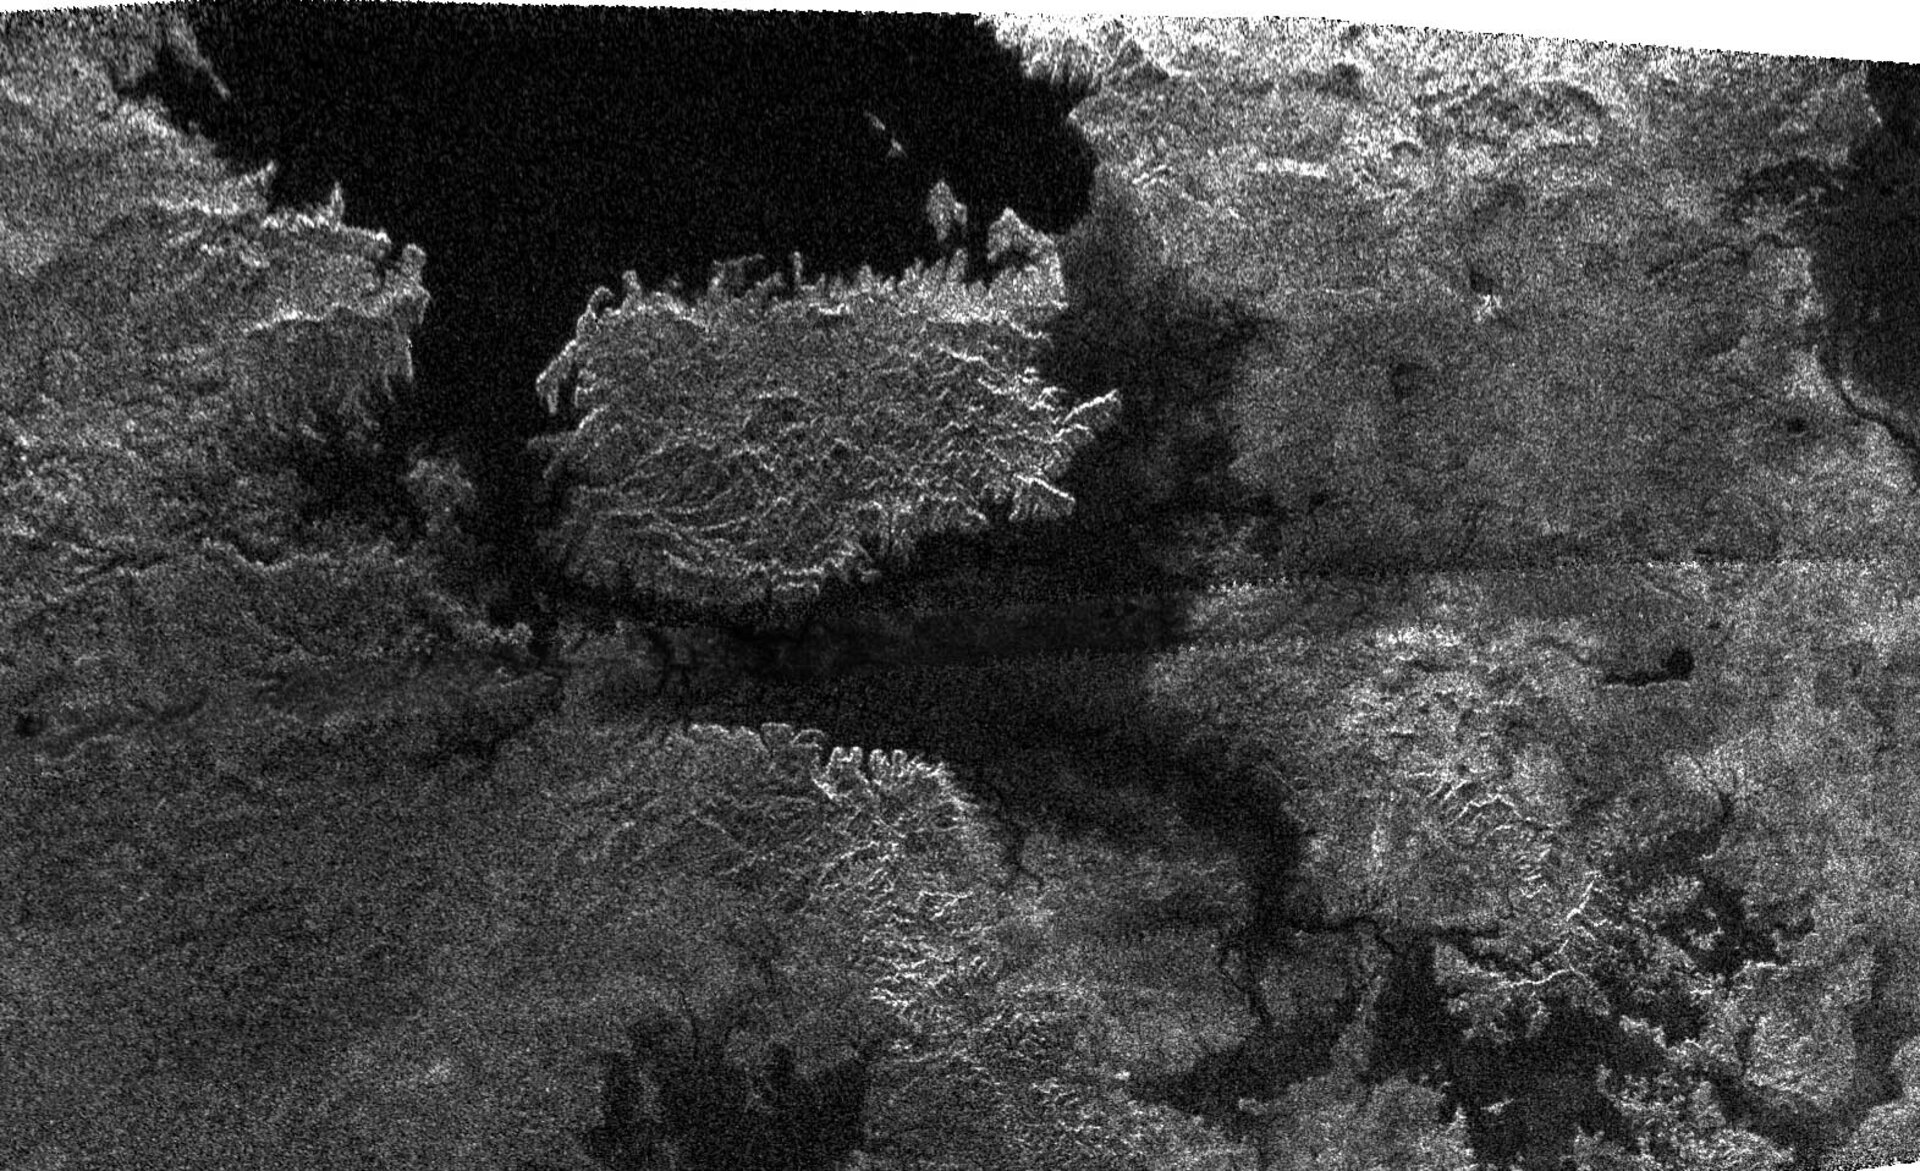 Larger and larger lakes on Titan